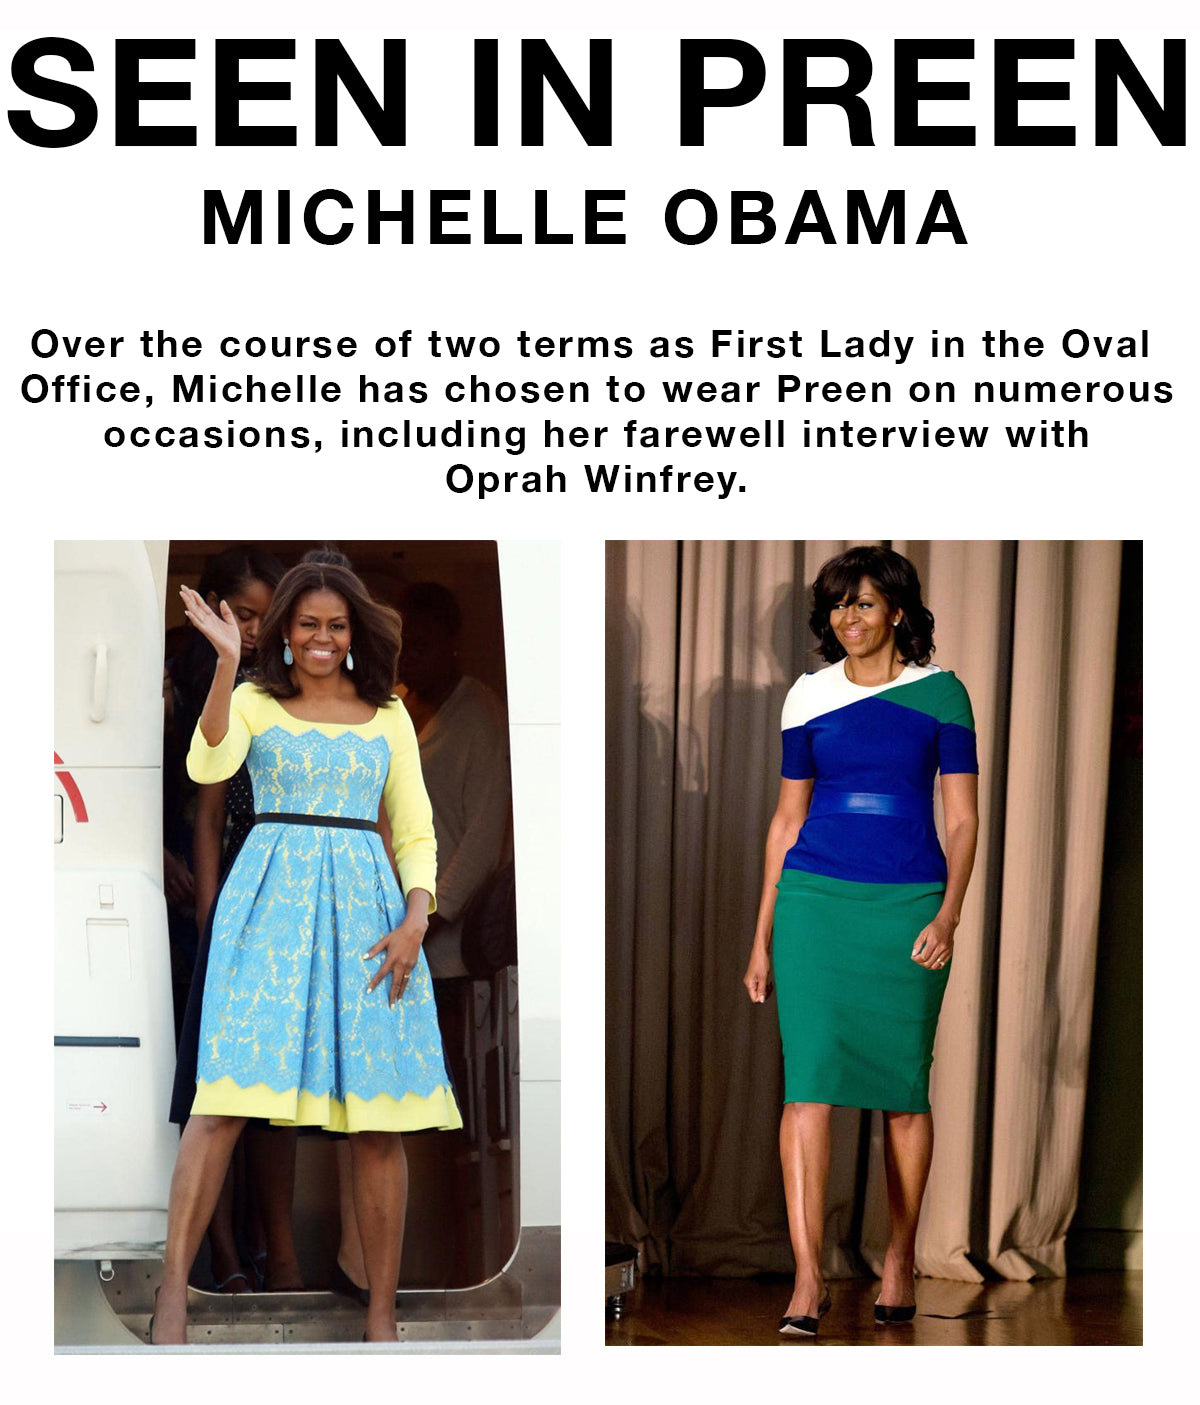 Michelle Obama in Preen